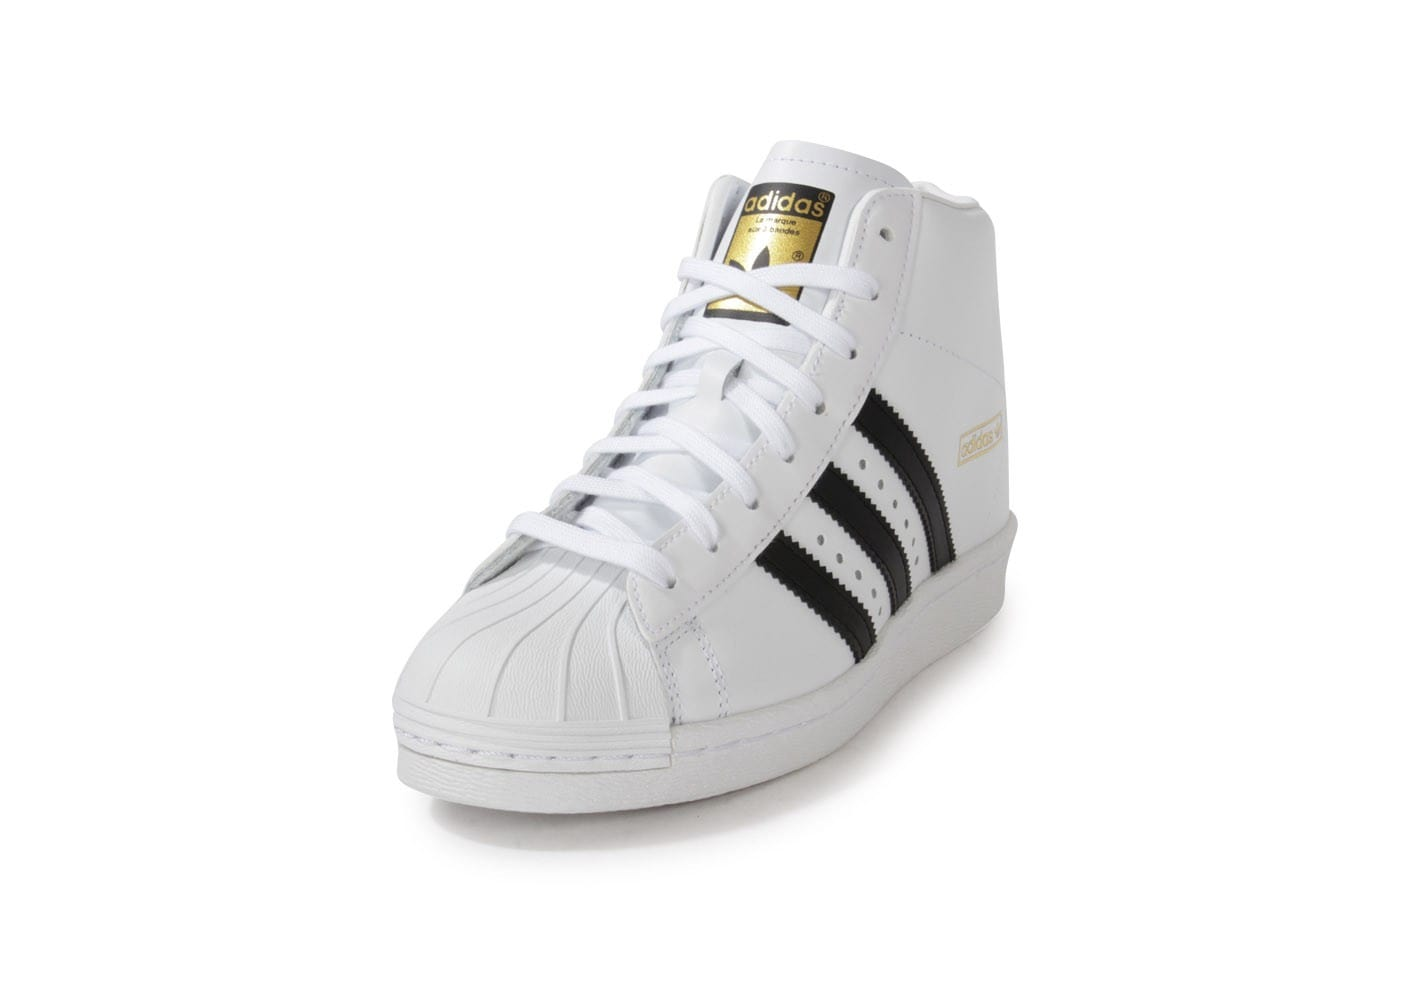 ... Chaussures adidas Superstar Up Compensee Blanche vue avant ...